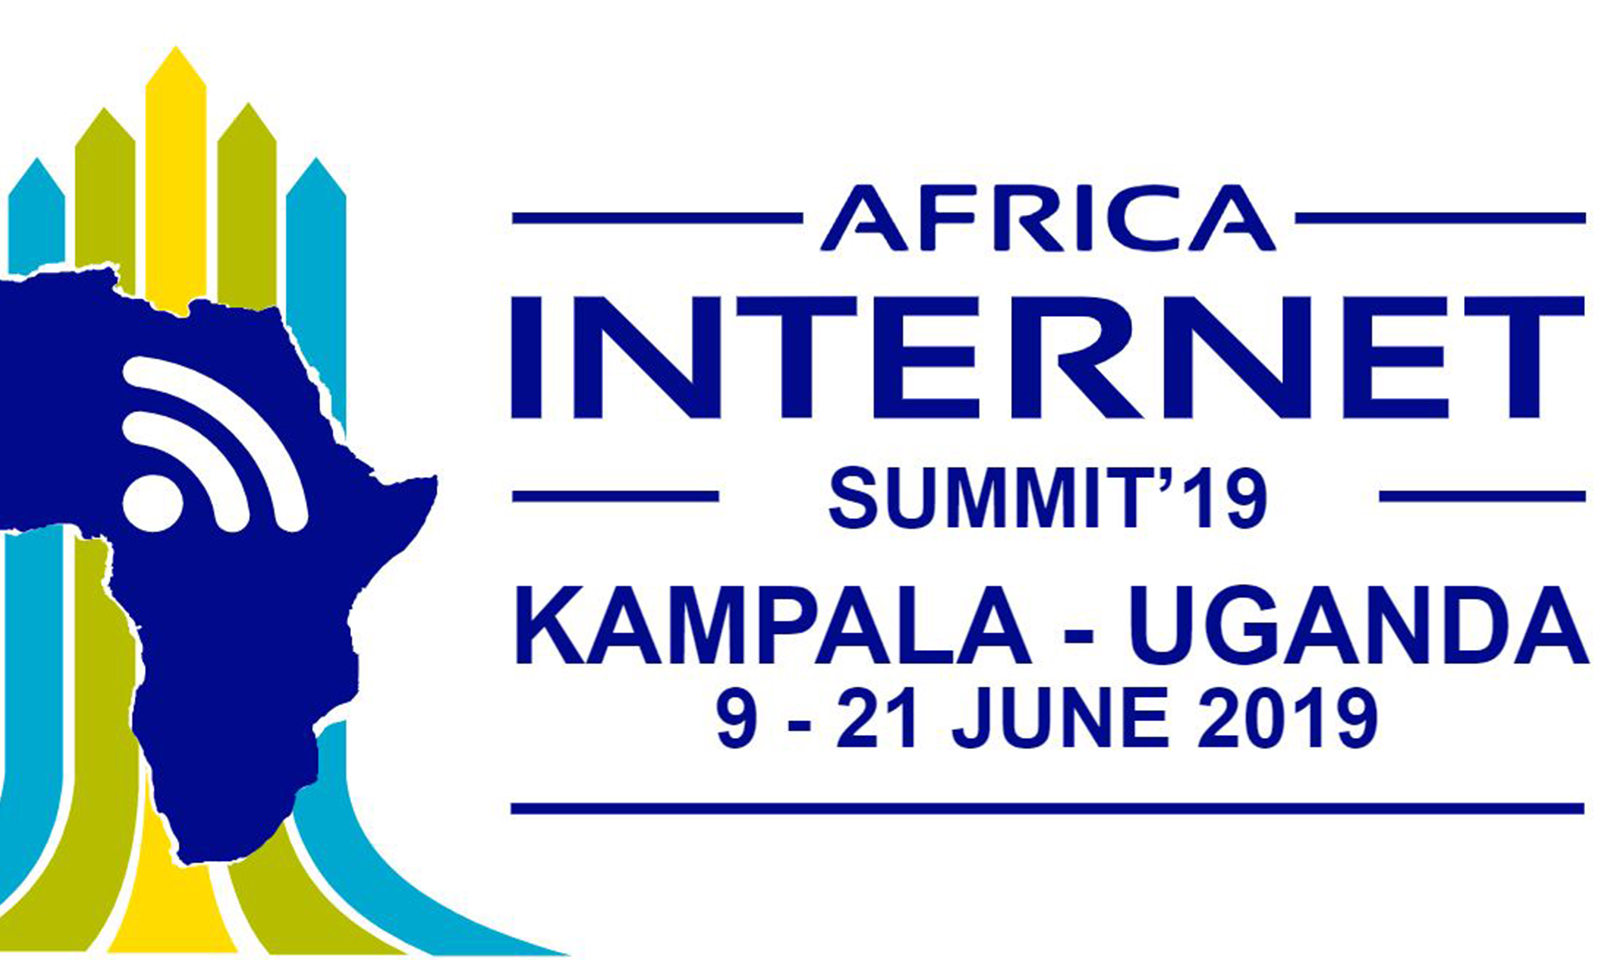 African Internet Summit